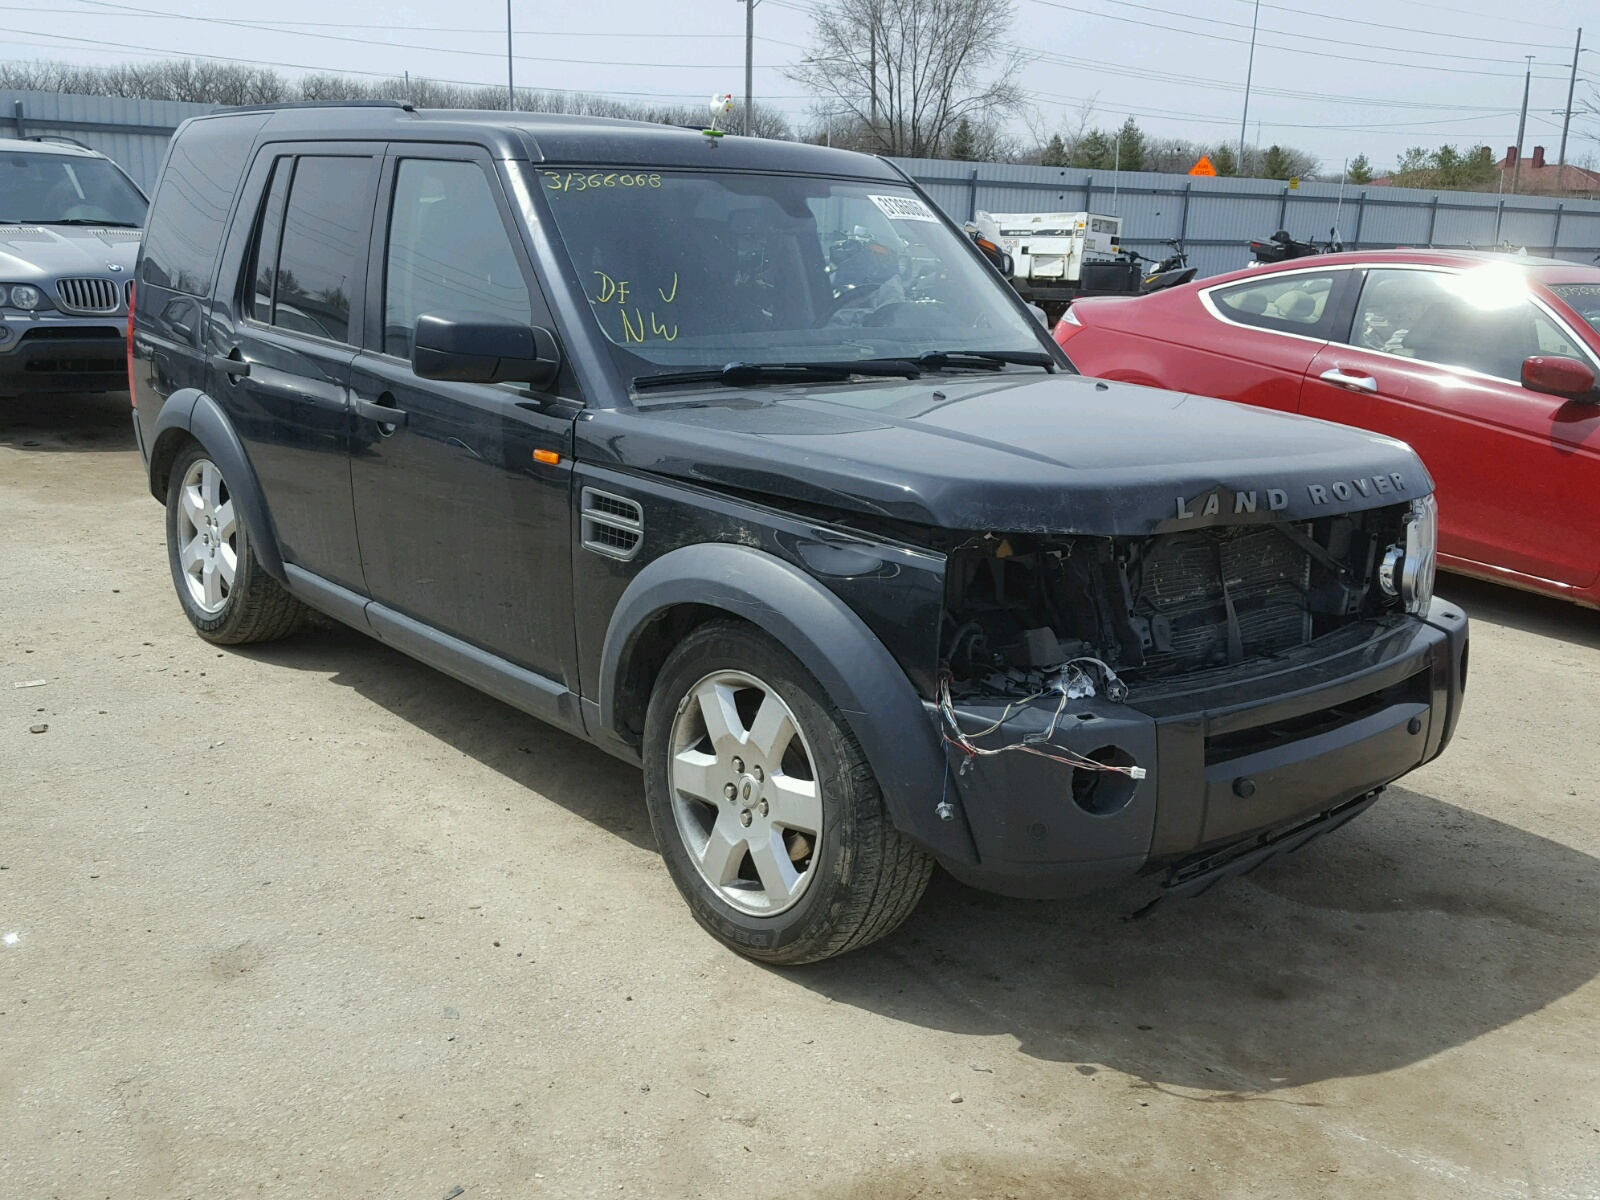 title auto online sale rover in landrover left auctions hse on of al cert carfinder silver land view birmingham lot copart for en salvage